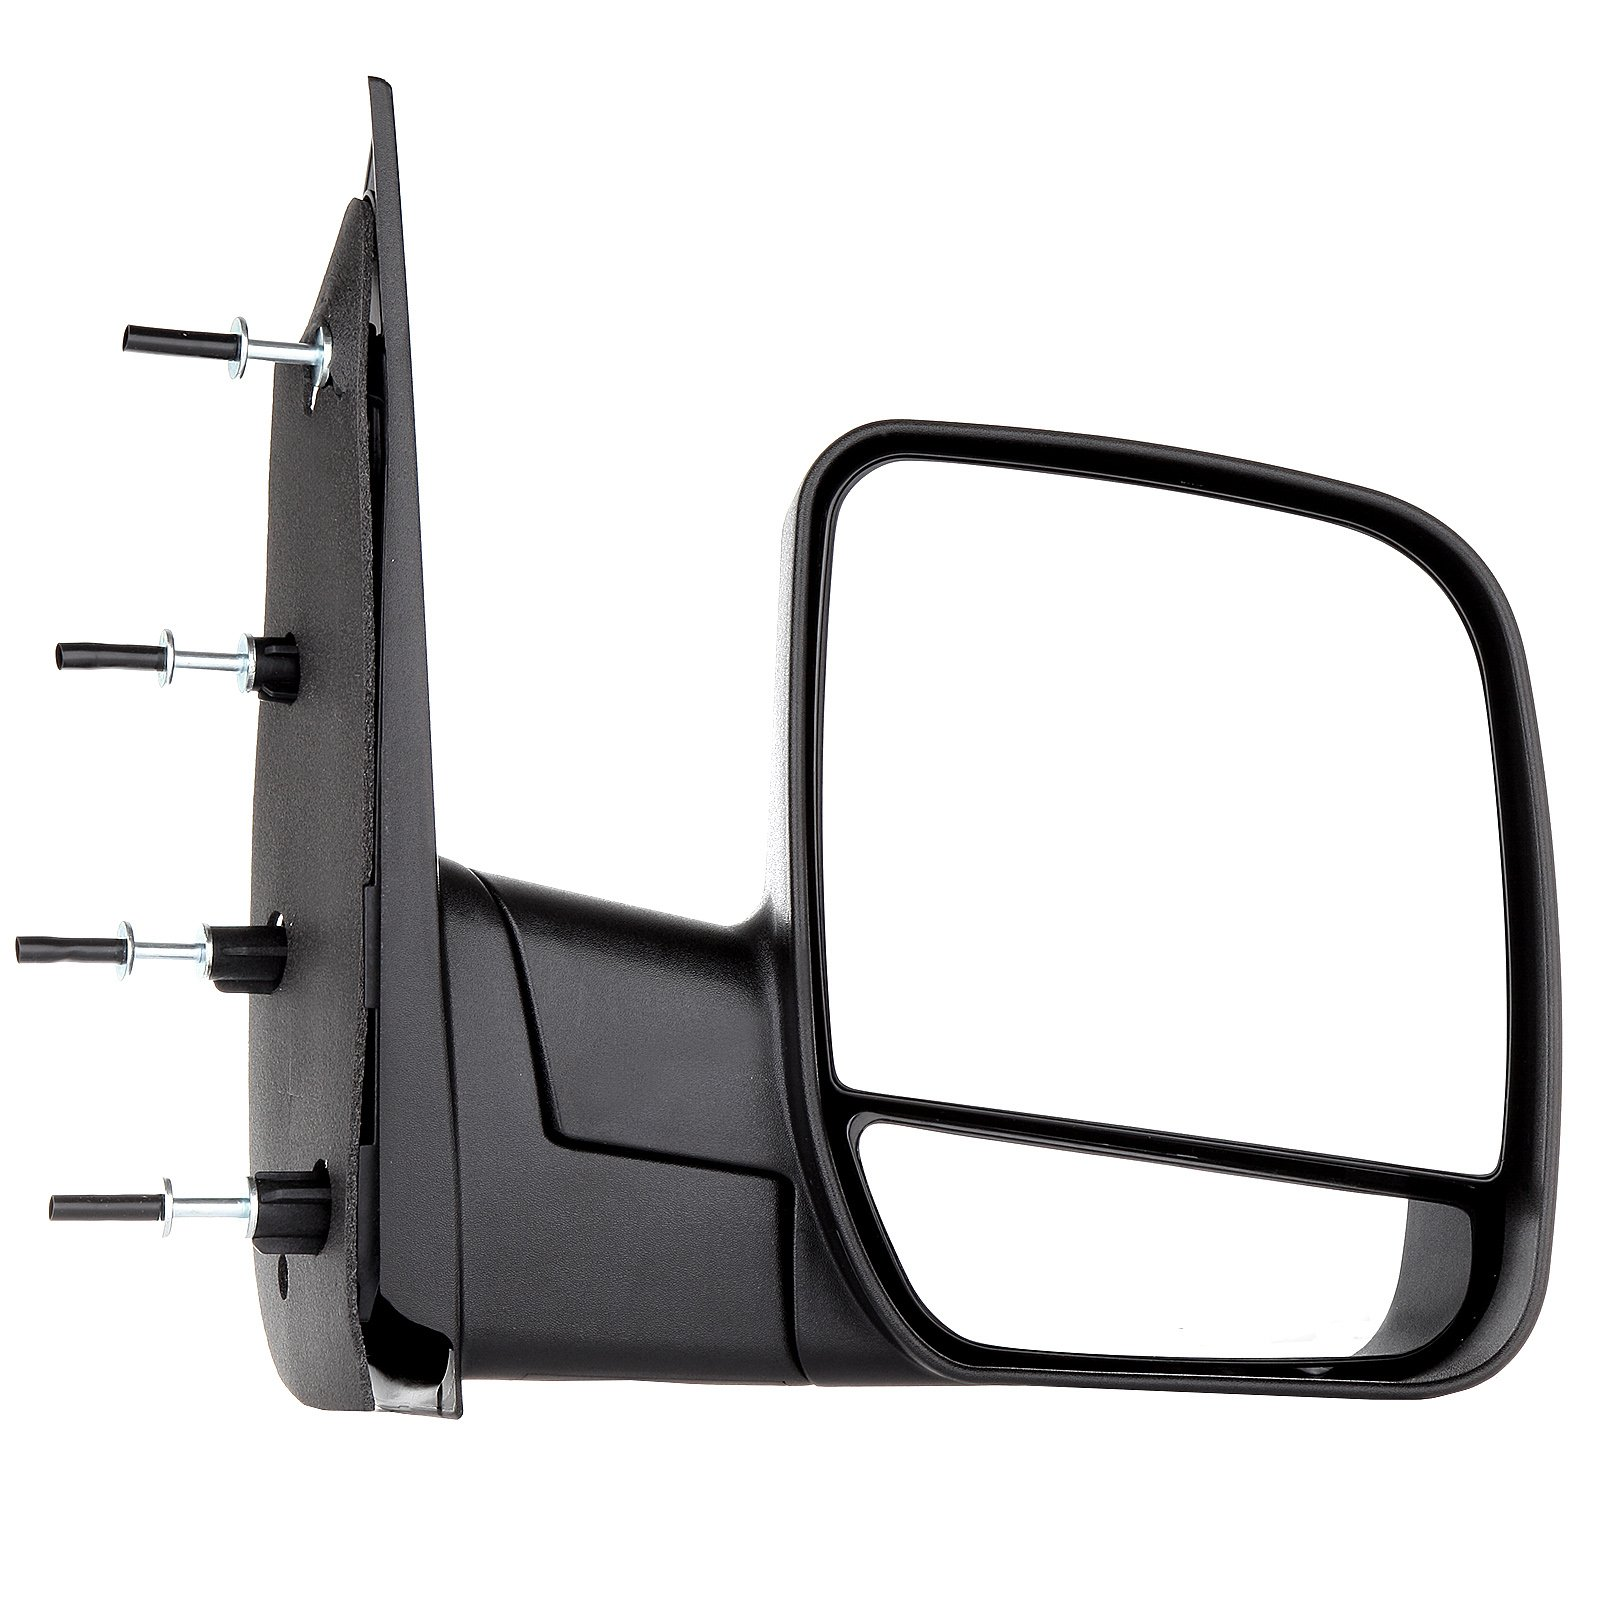 SCITOO Towing Mirrors, fit Ford Exterior Accessories Mirrors fit 02-08 Ford E150 E250 E350 E450 E550 Van with Duel Glass Foldable Manual Controlling Features (Passenger Side)